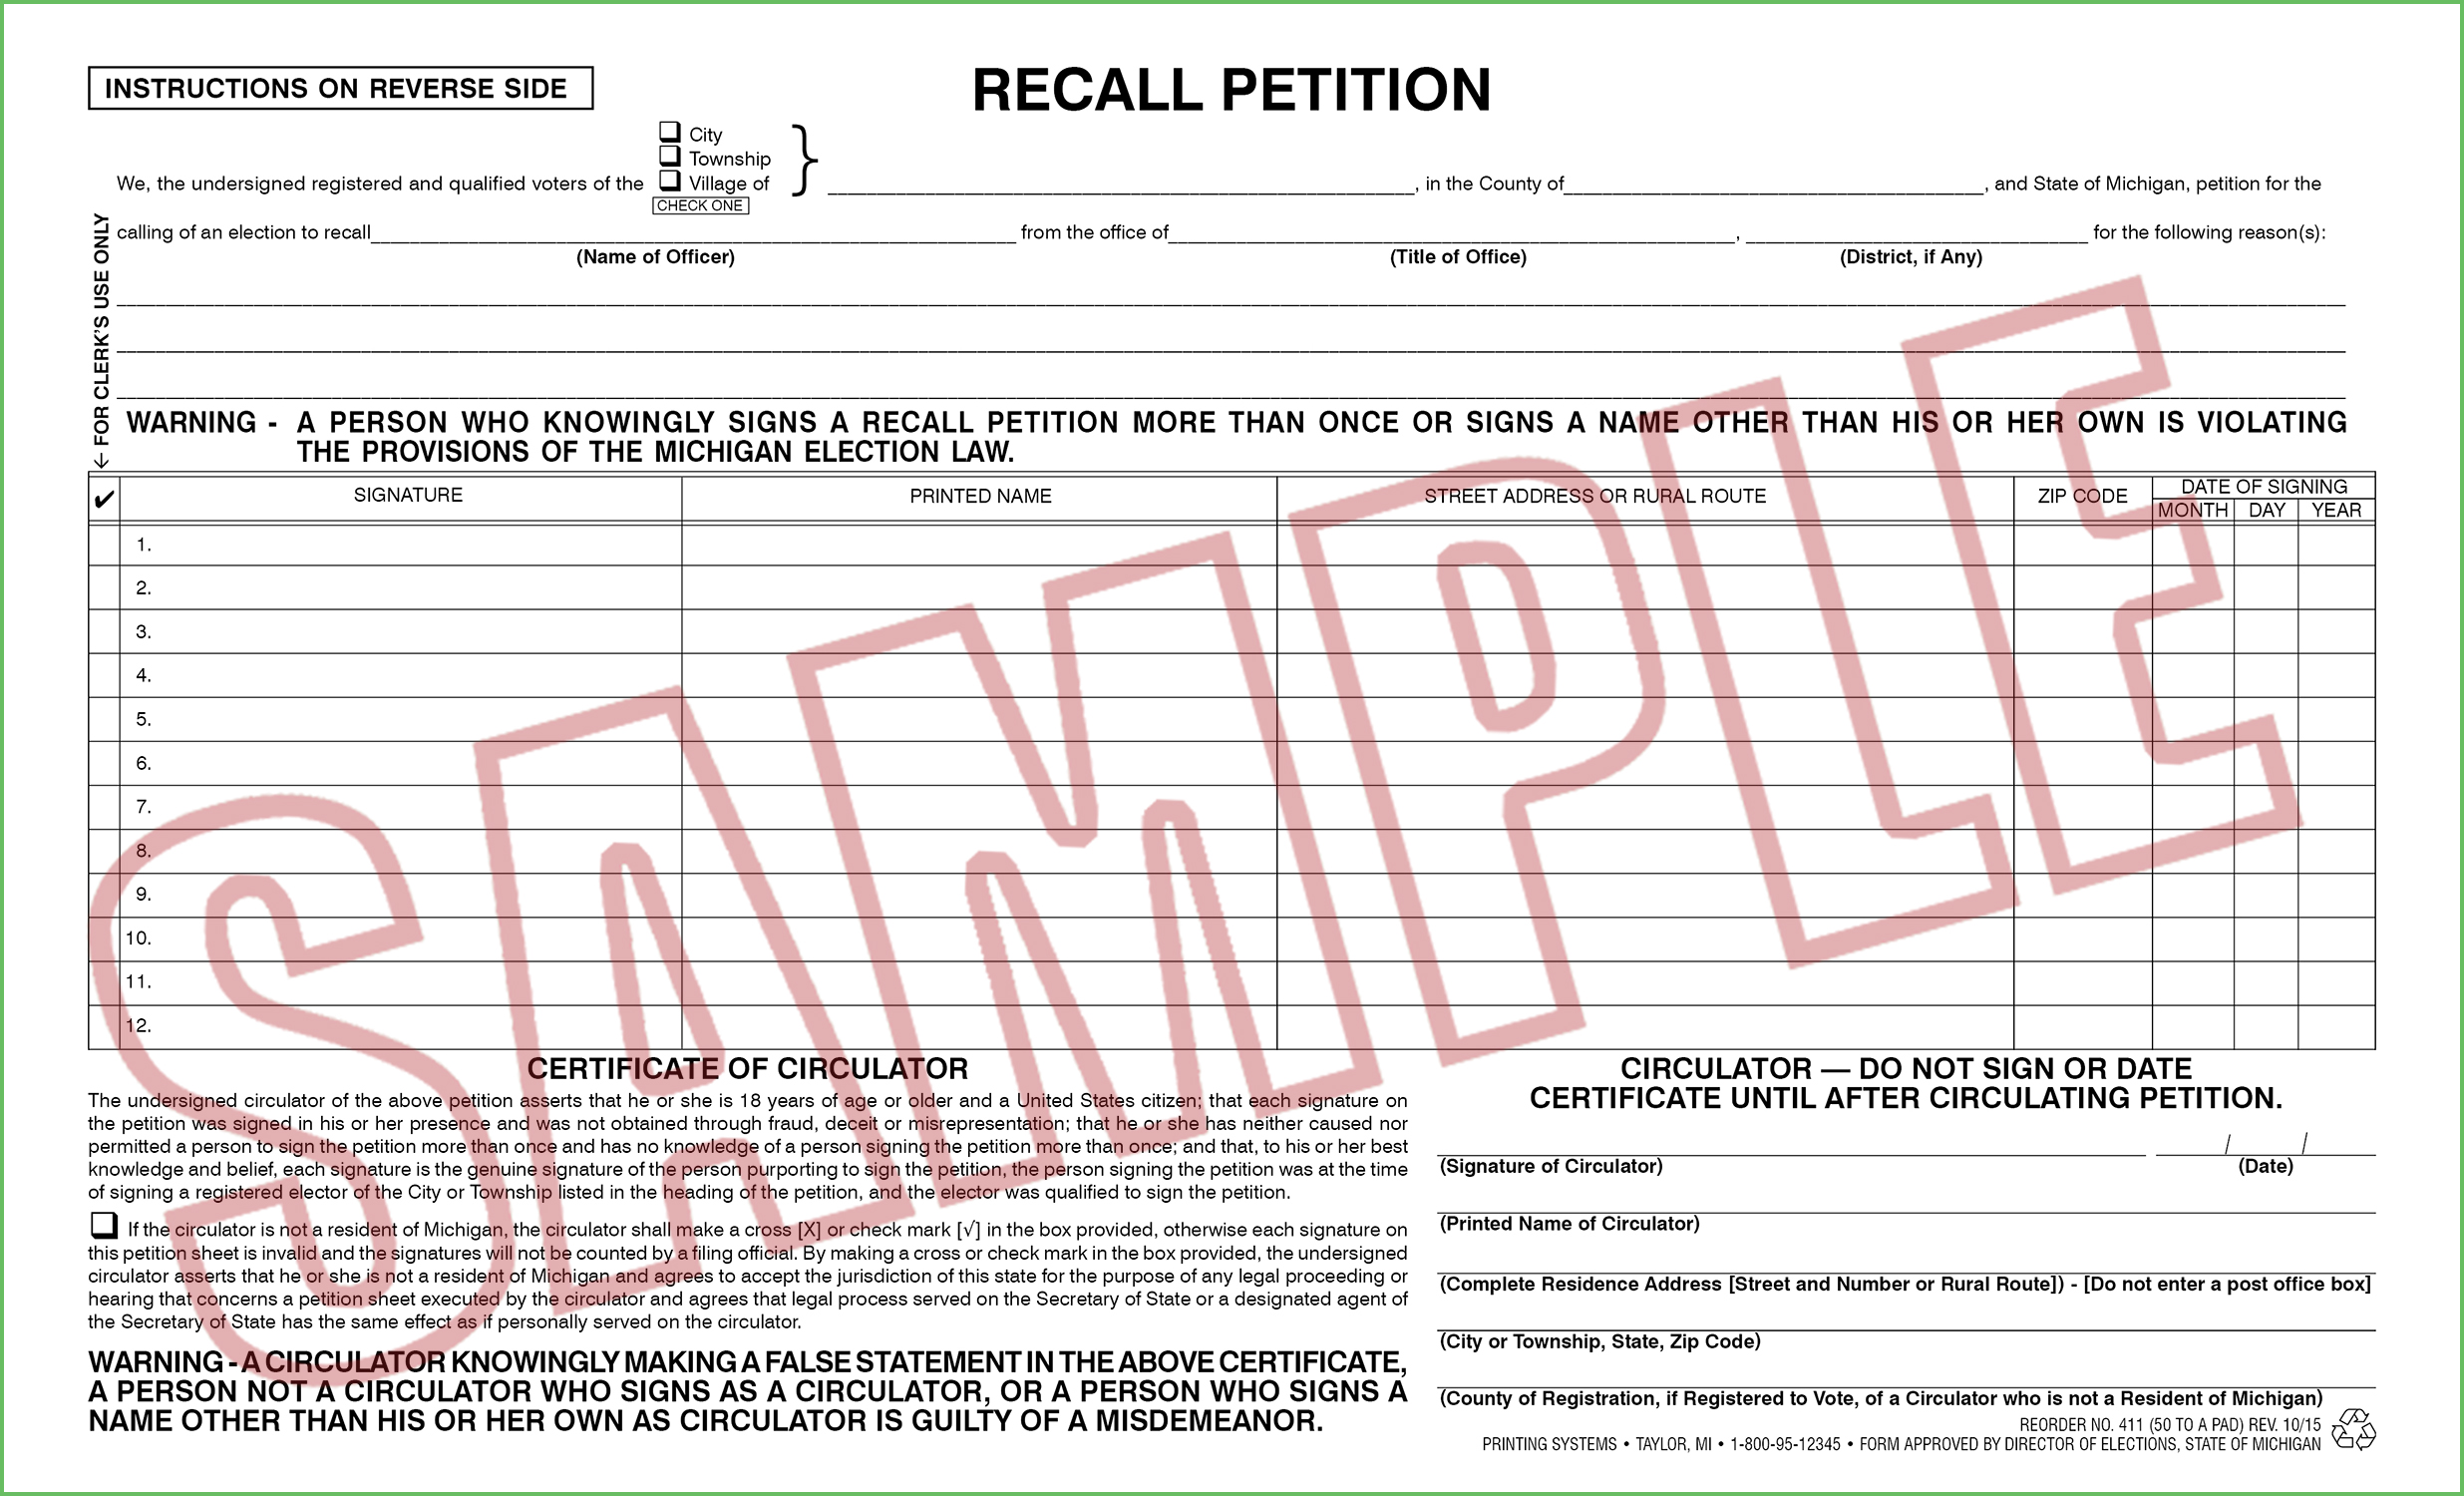 411 Recall Petition (Ci/Twp/Village) (50 per pad)